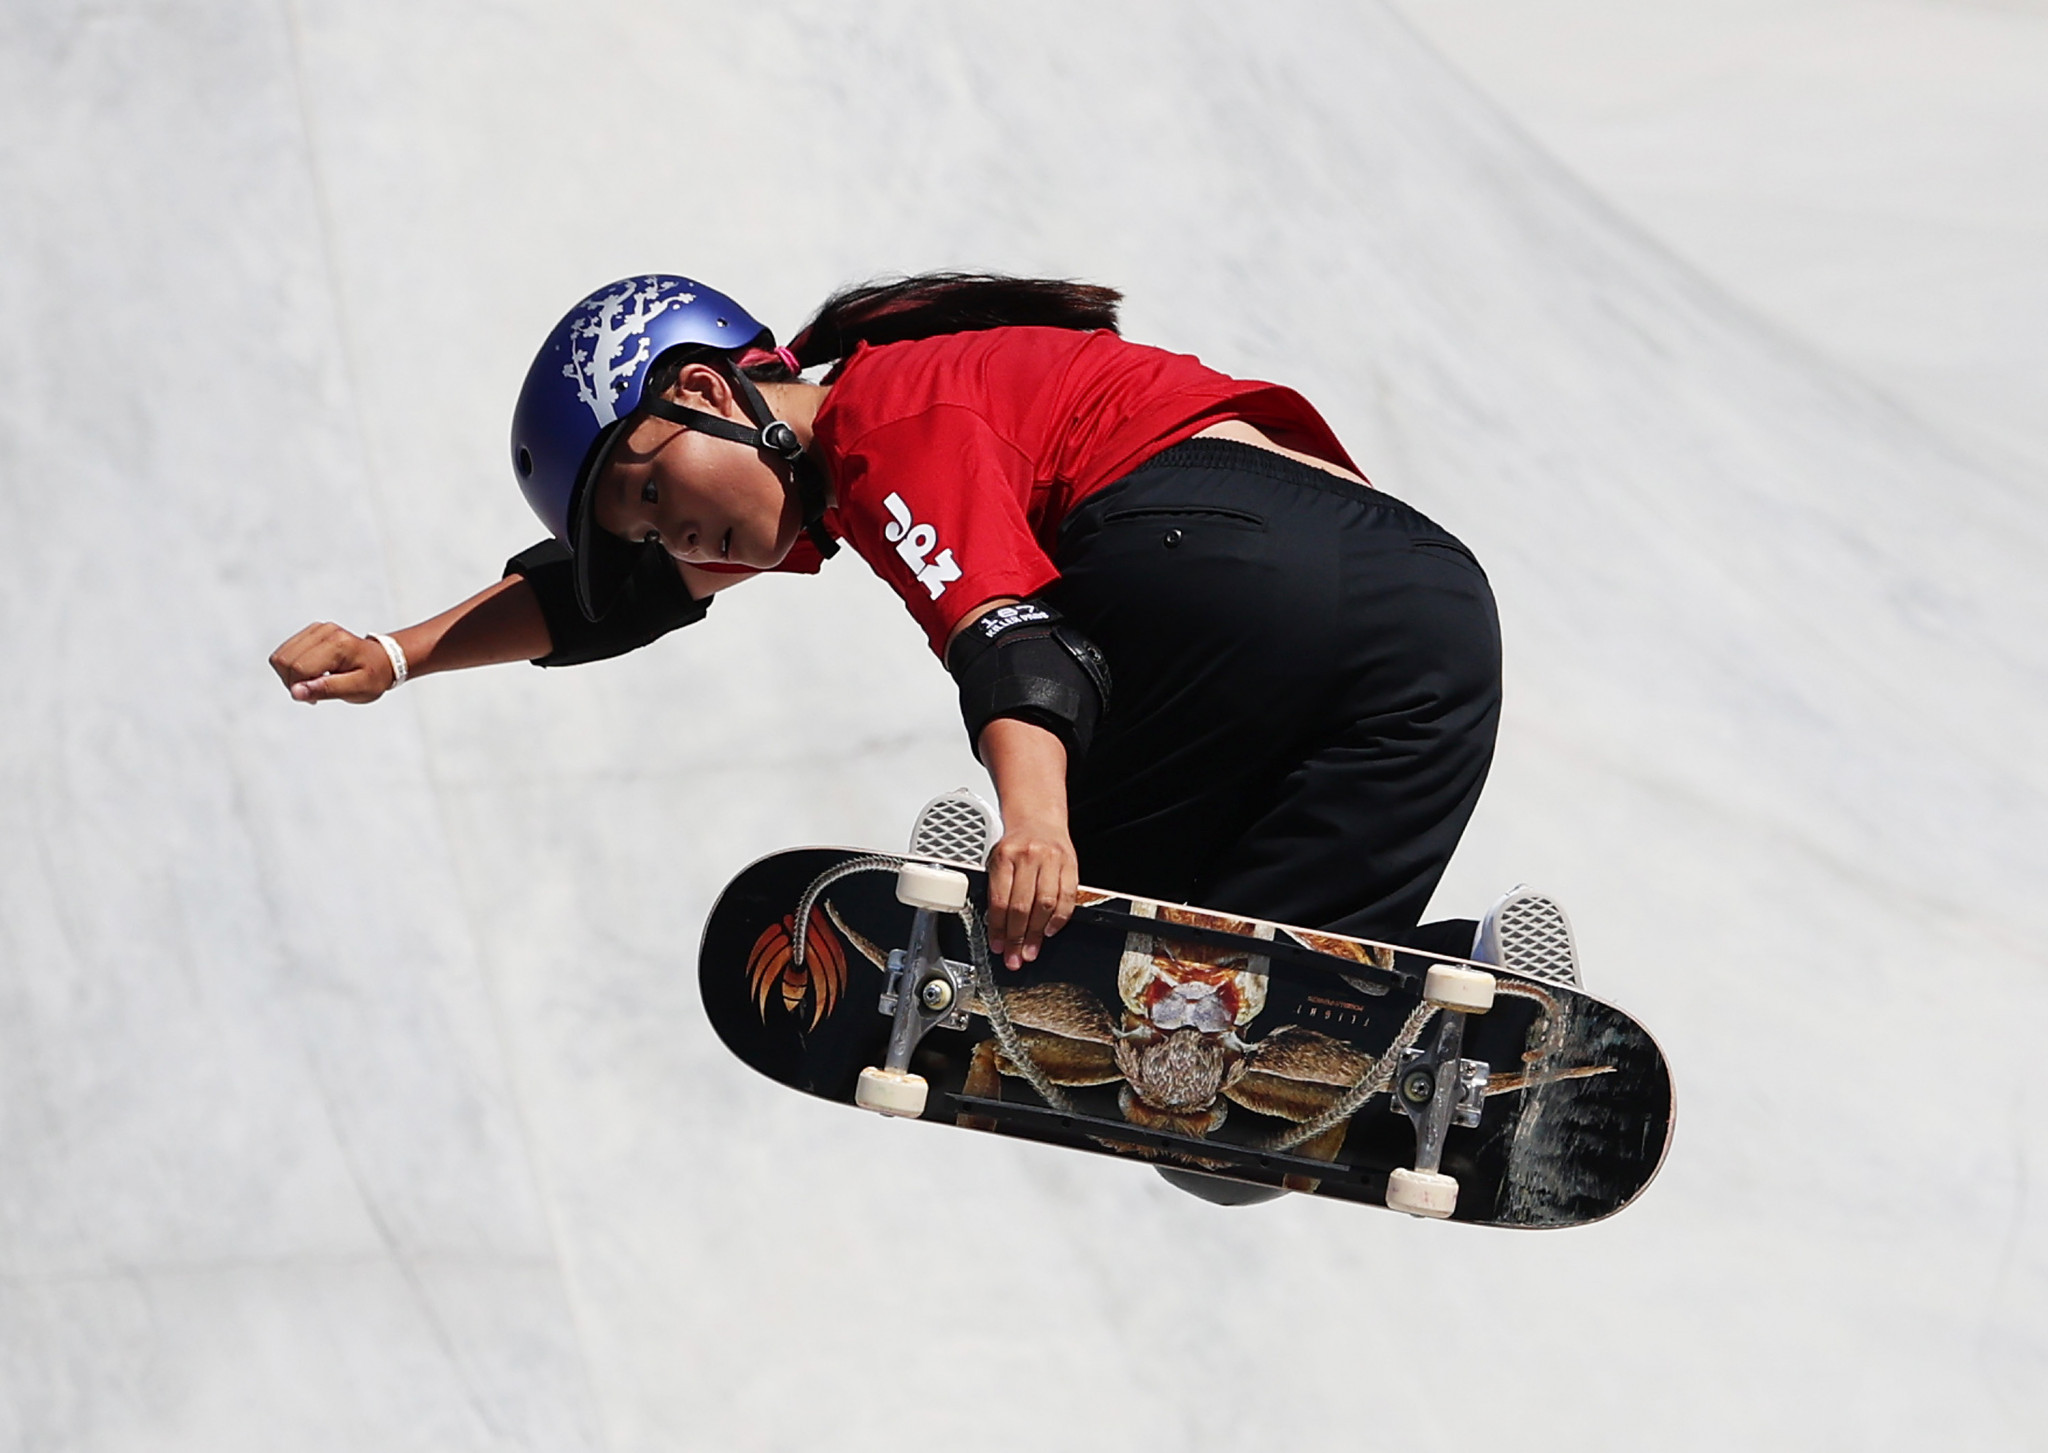 Japan's Sakura Yosozumi's first run of the competition proved enough to win gold ©Getty Images